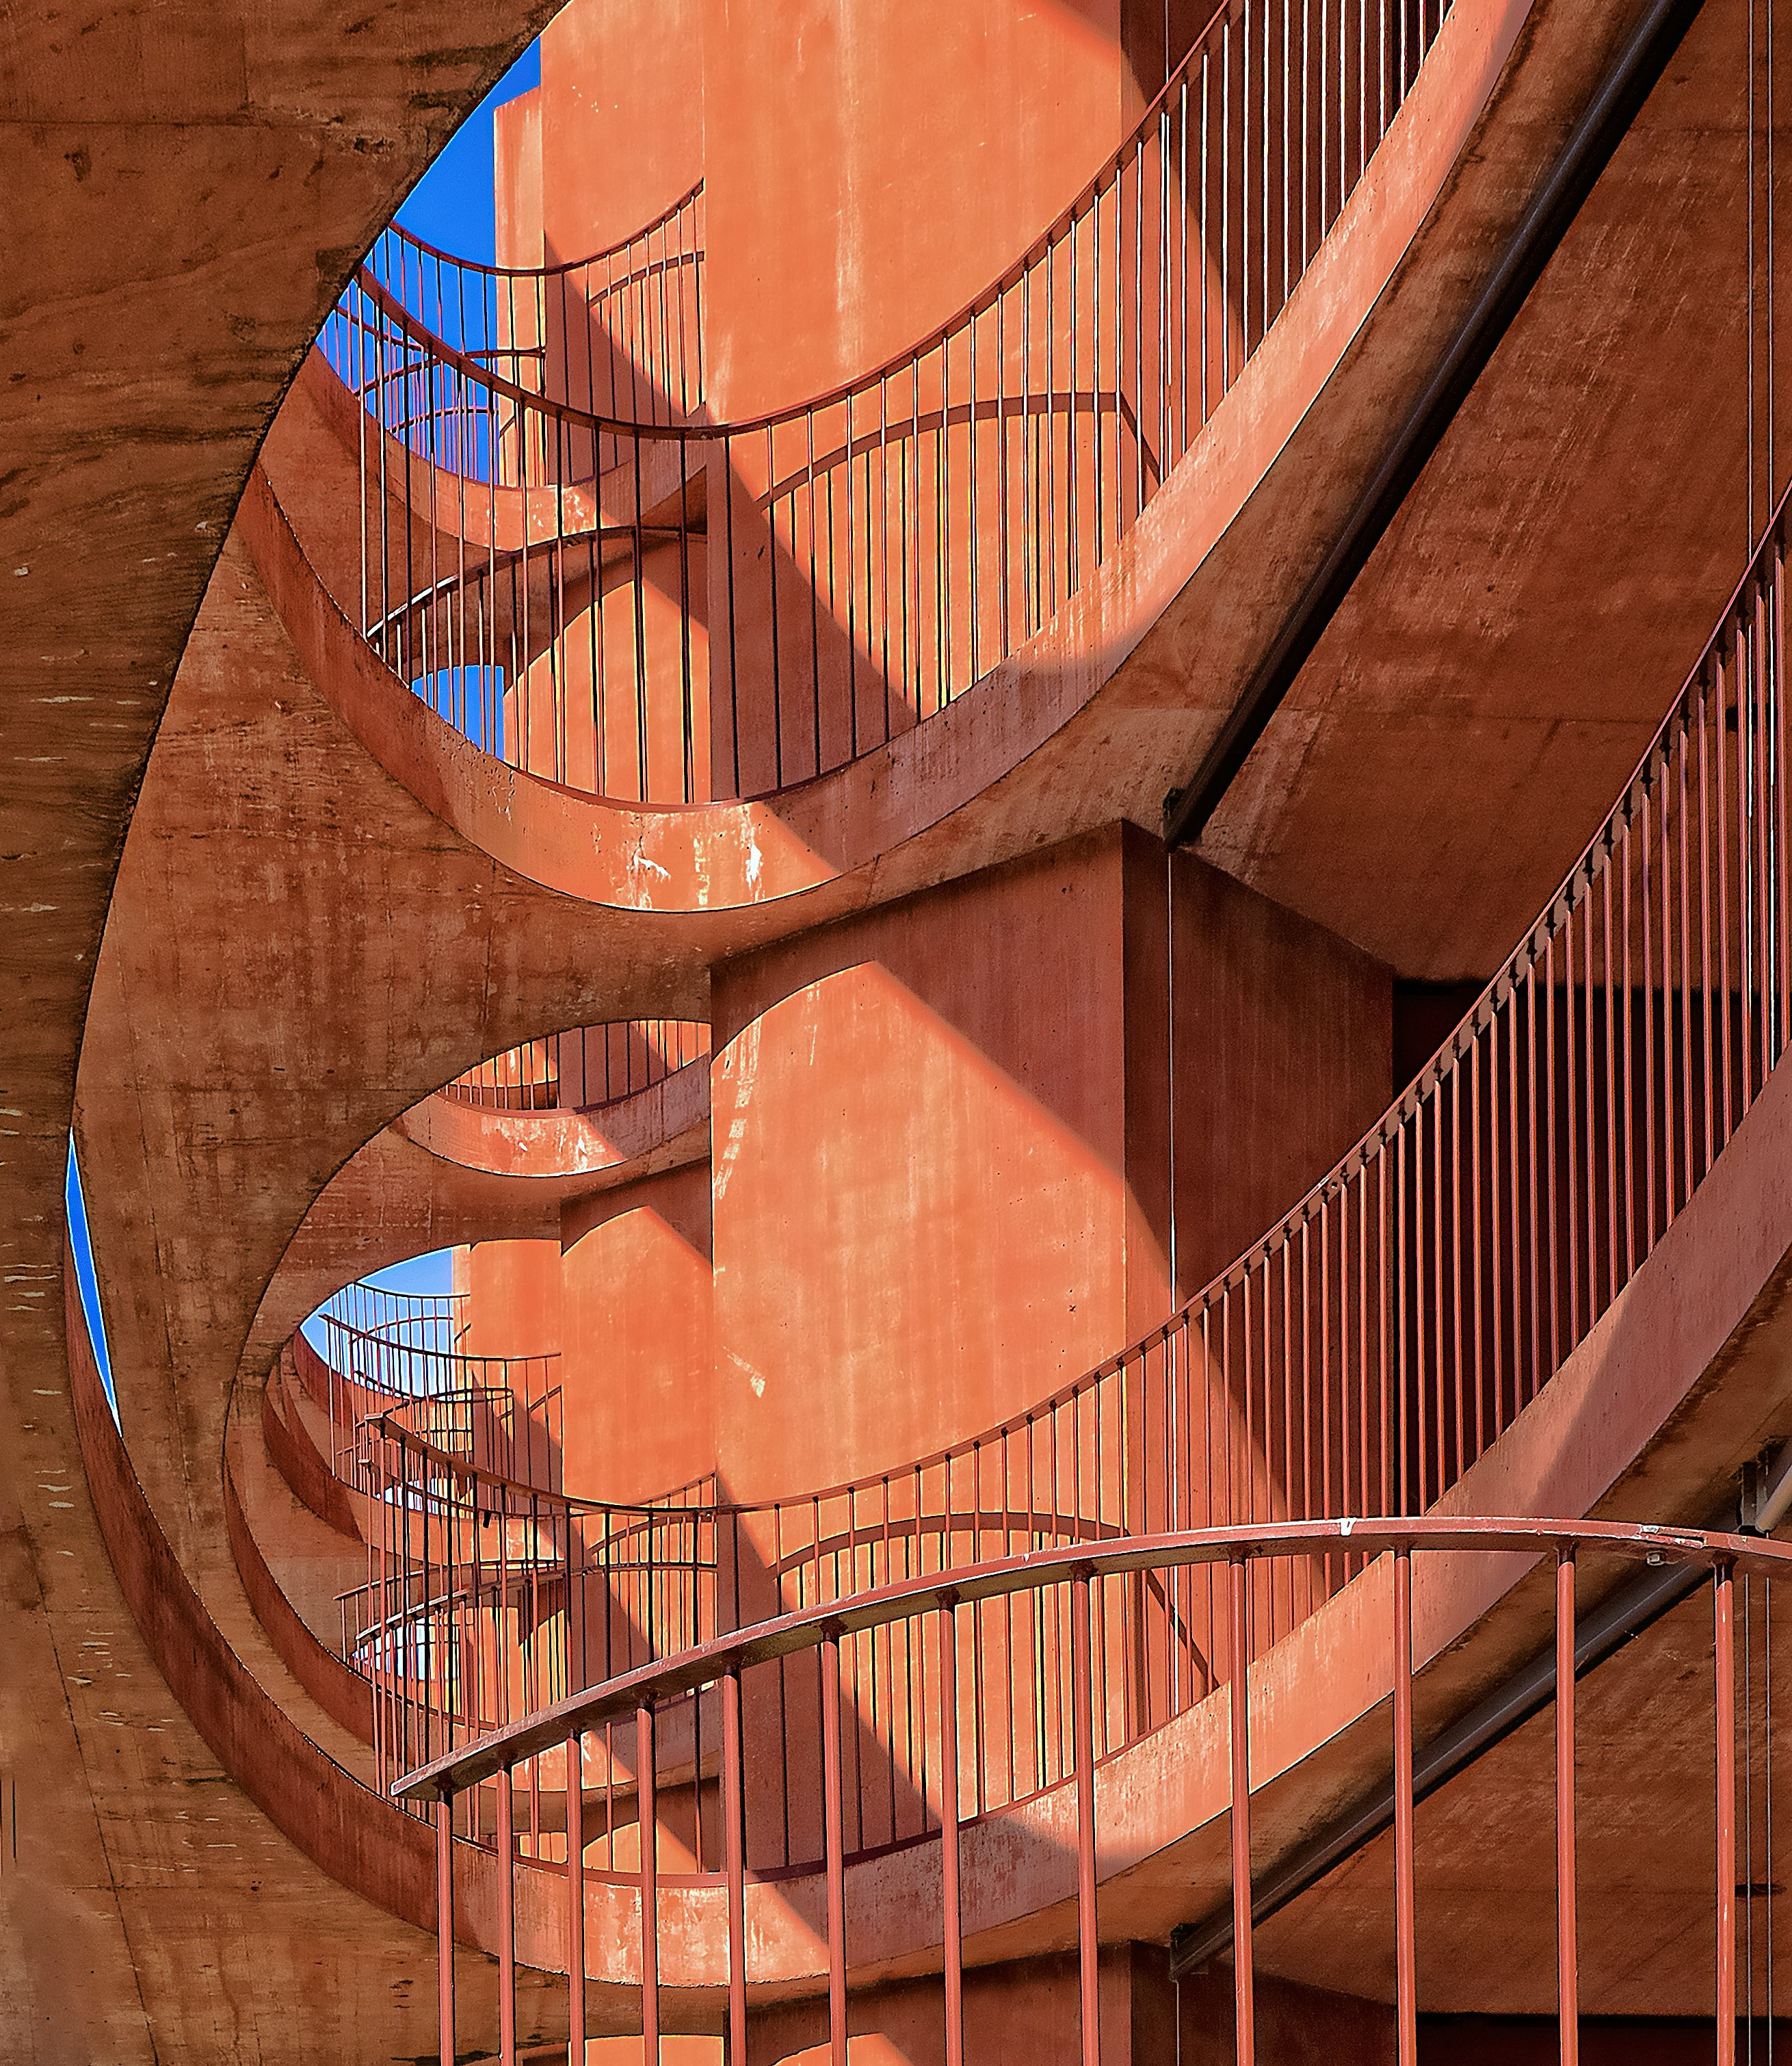 low angle photography of orange concrete building